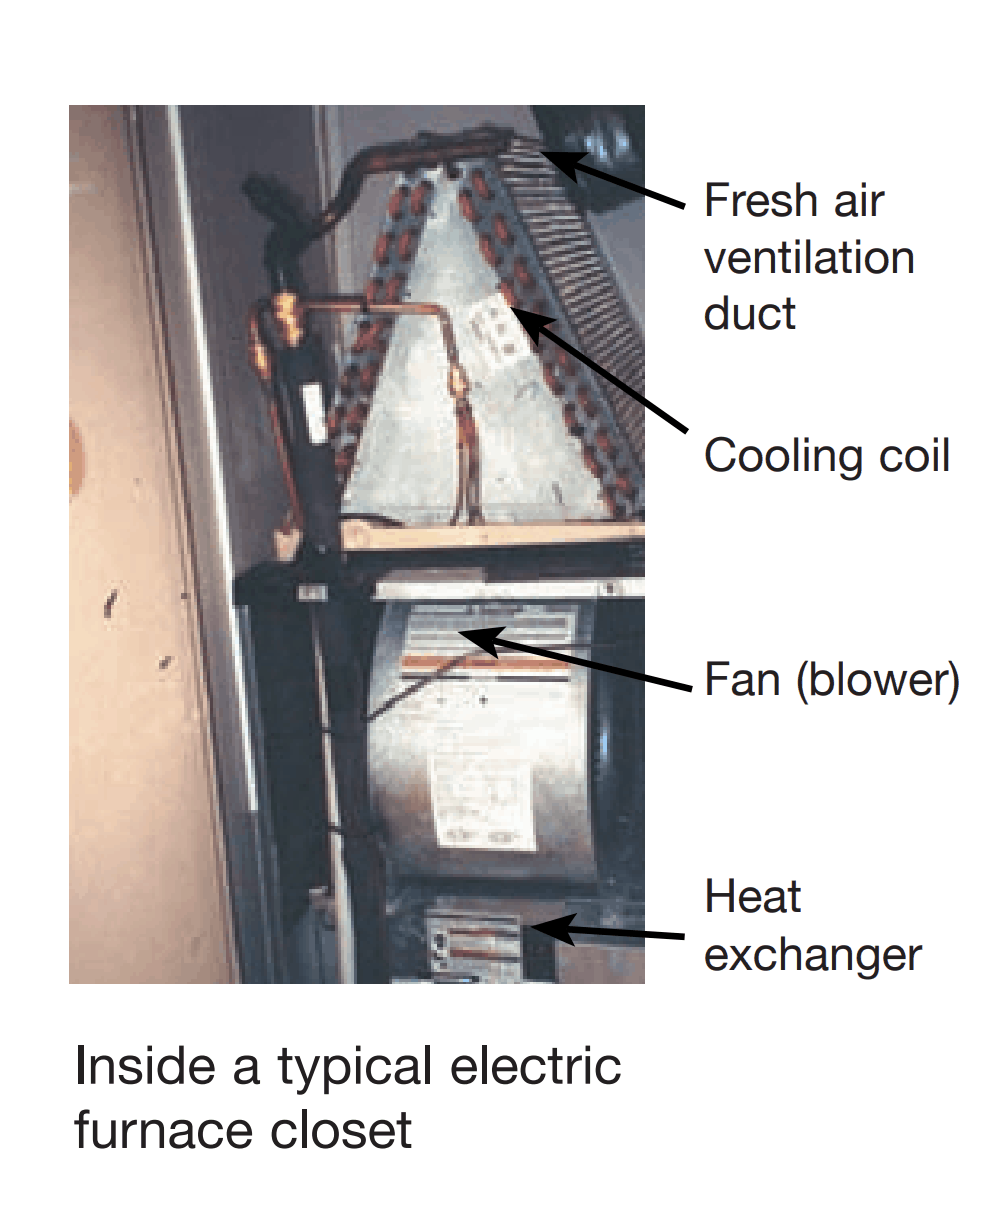 medium resolution of typical electric furnace in a mobile home with